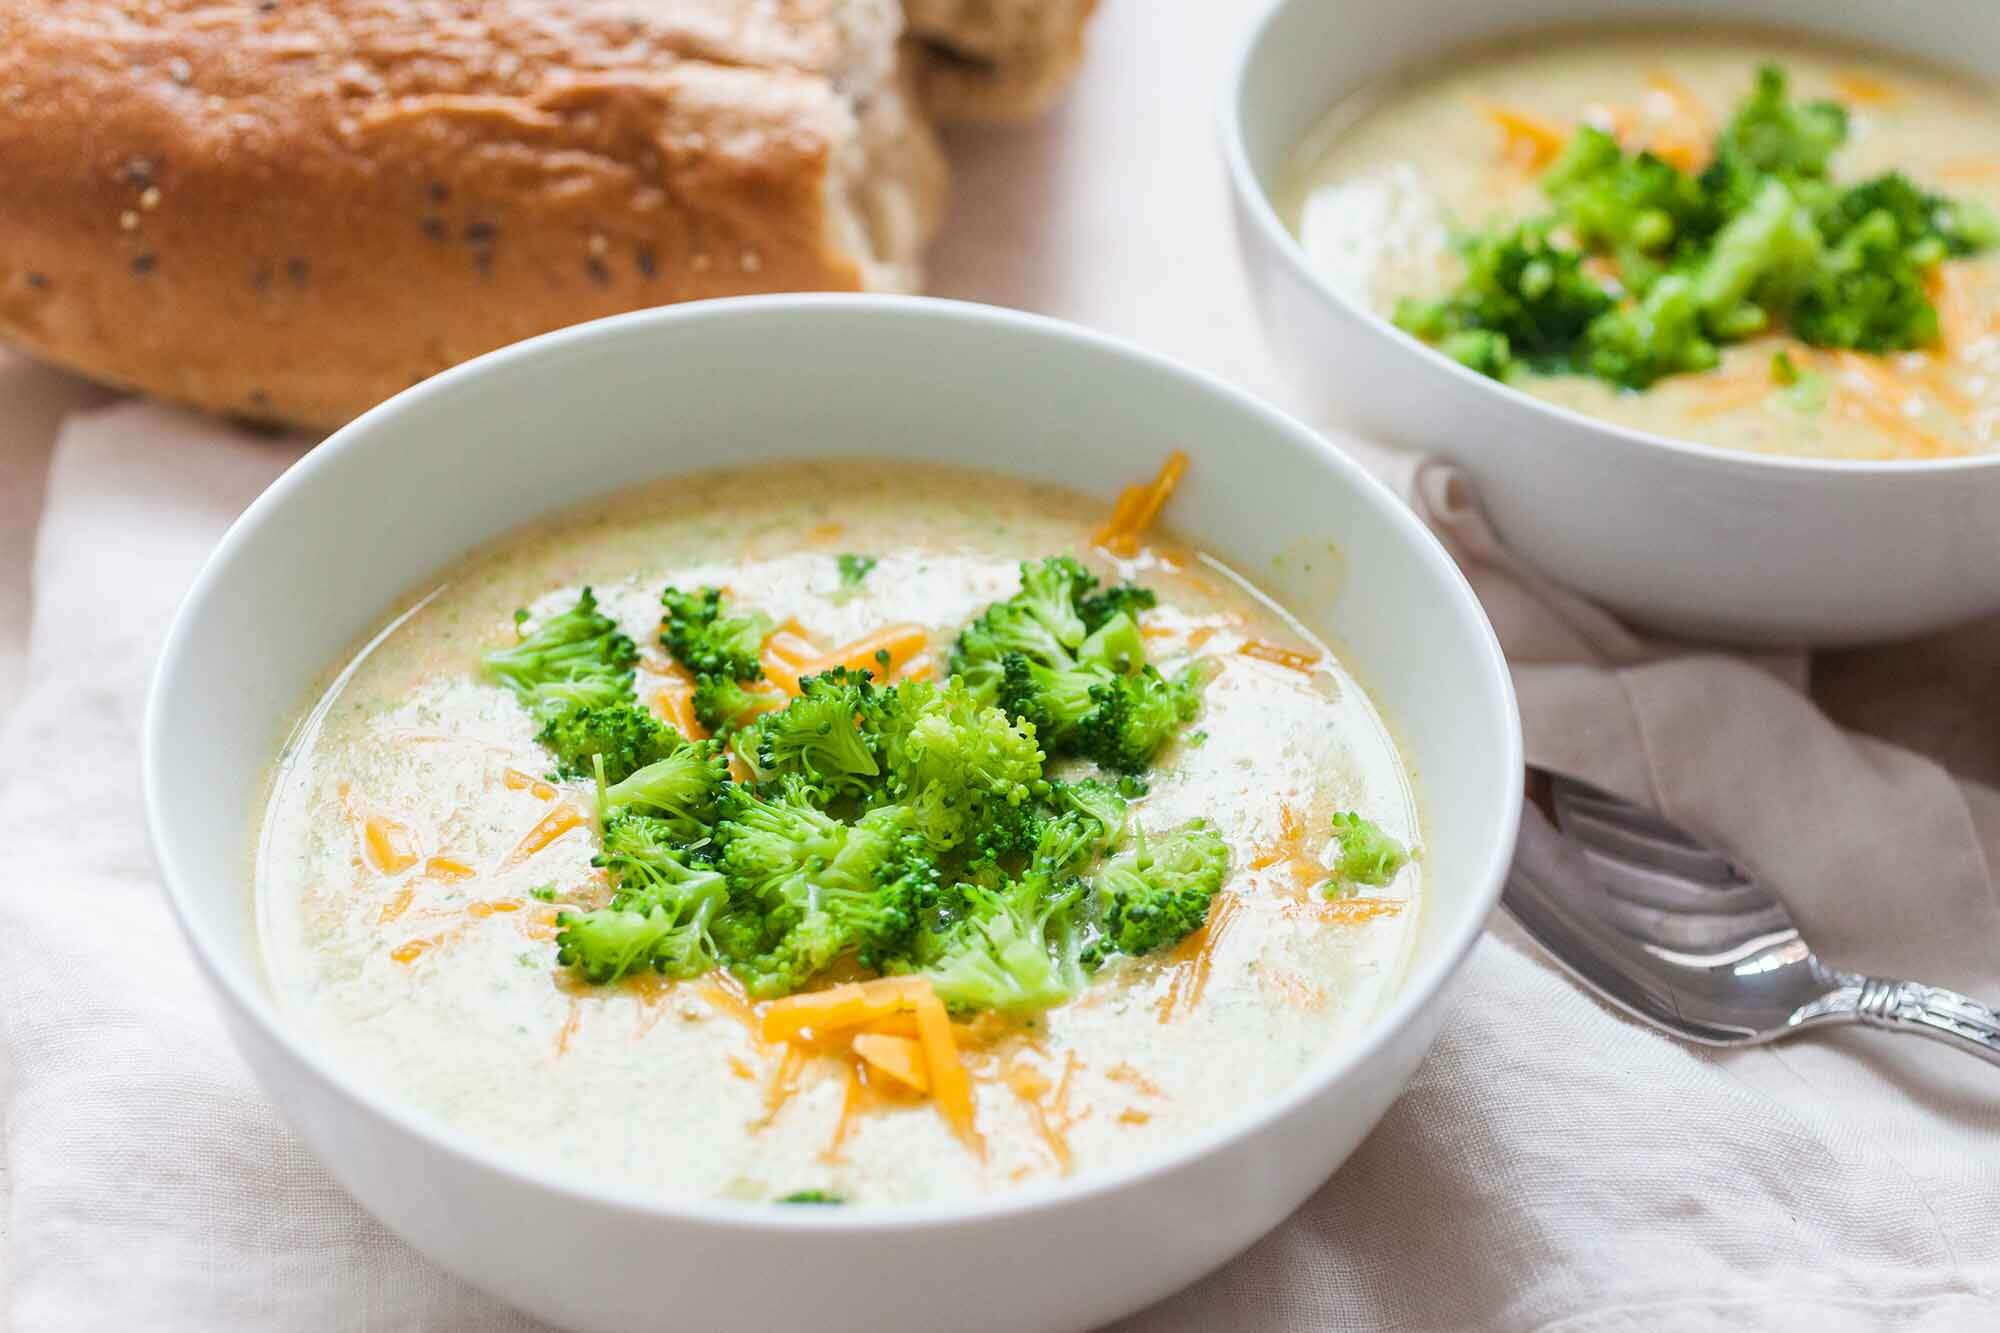 Broccoli Cheddar Soup Recipe served in bowls with bread